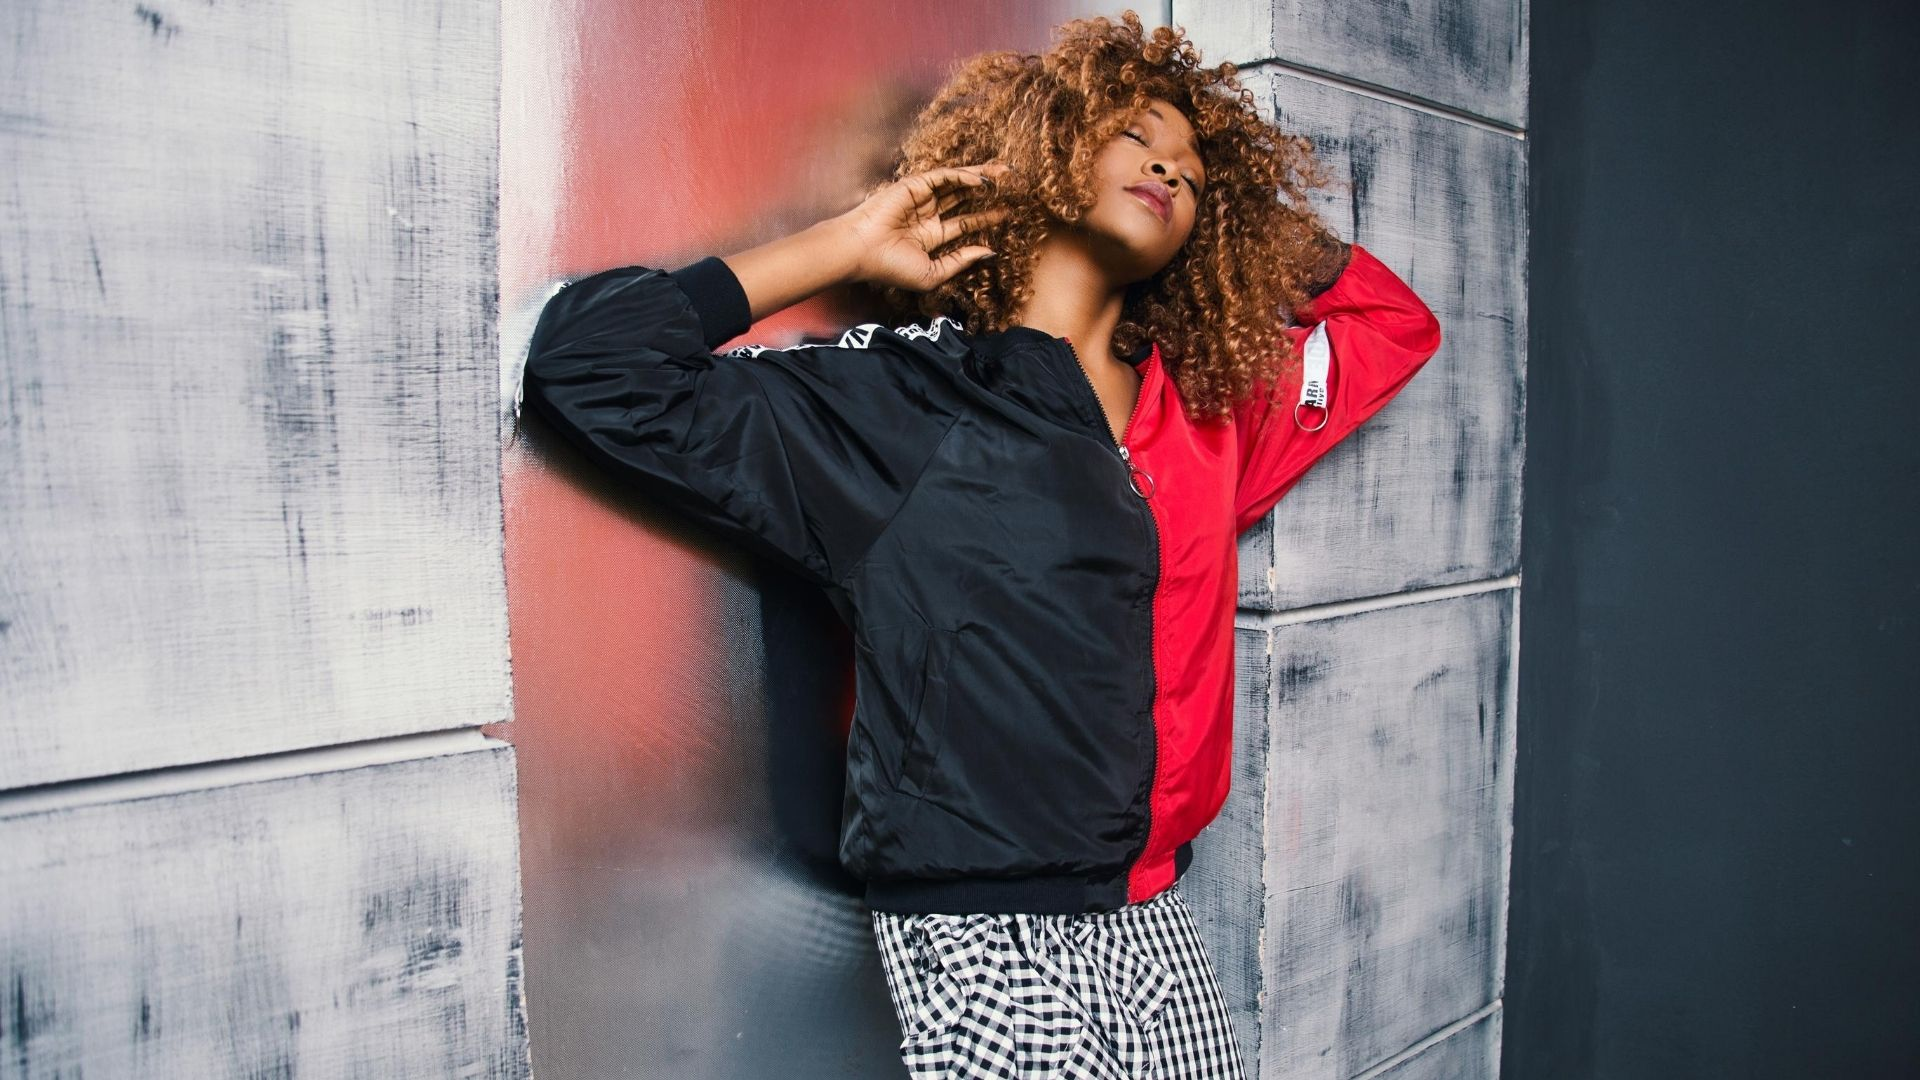 Woman wearing a black and red bomber jacket leans against a wall.